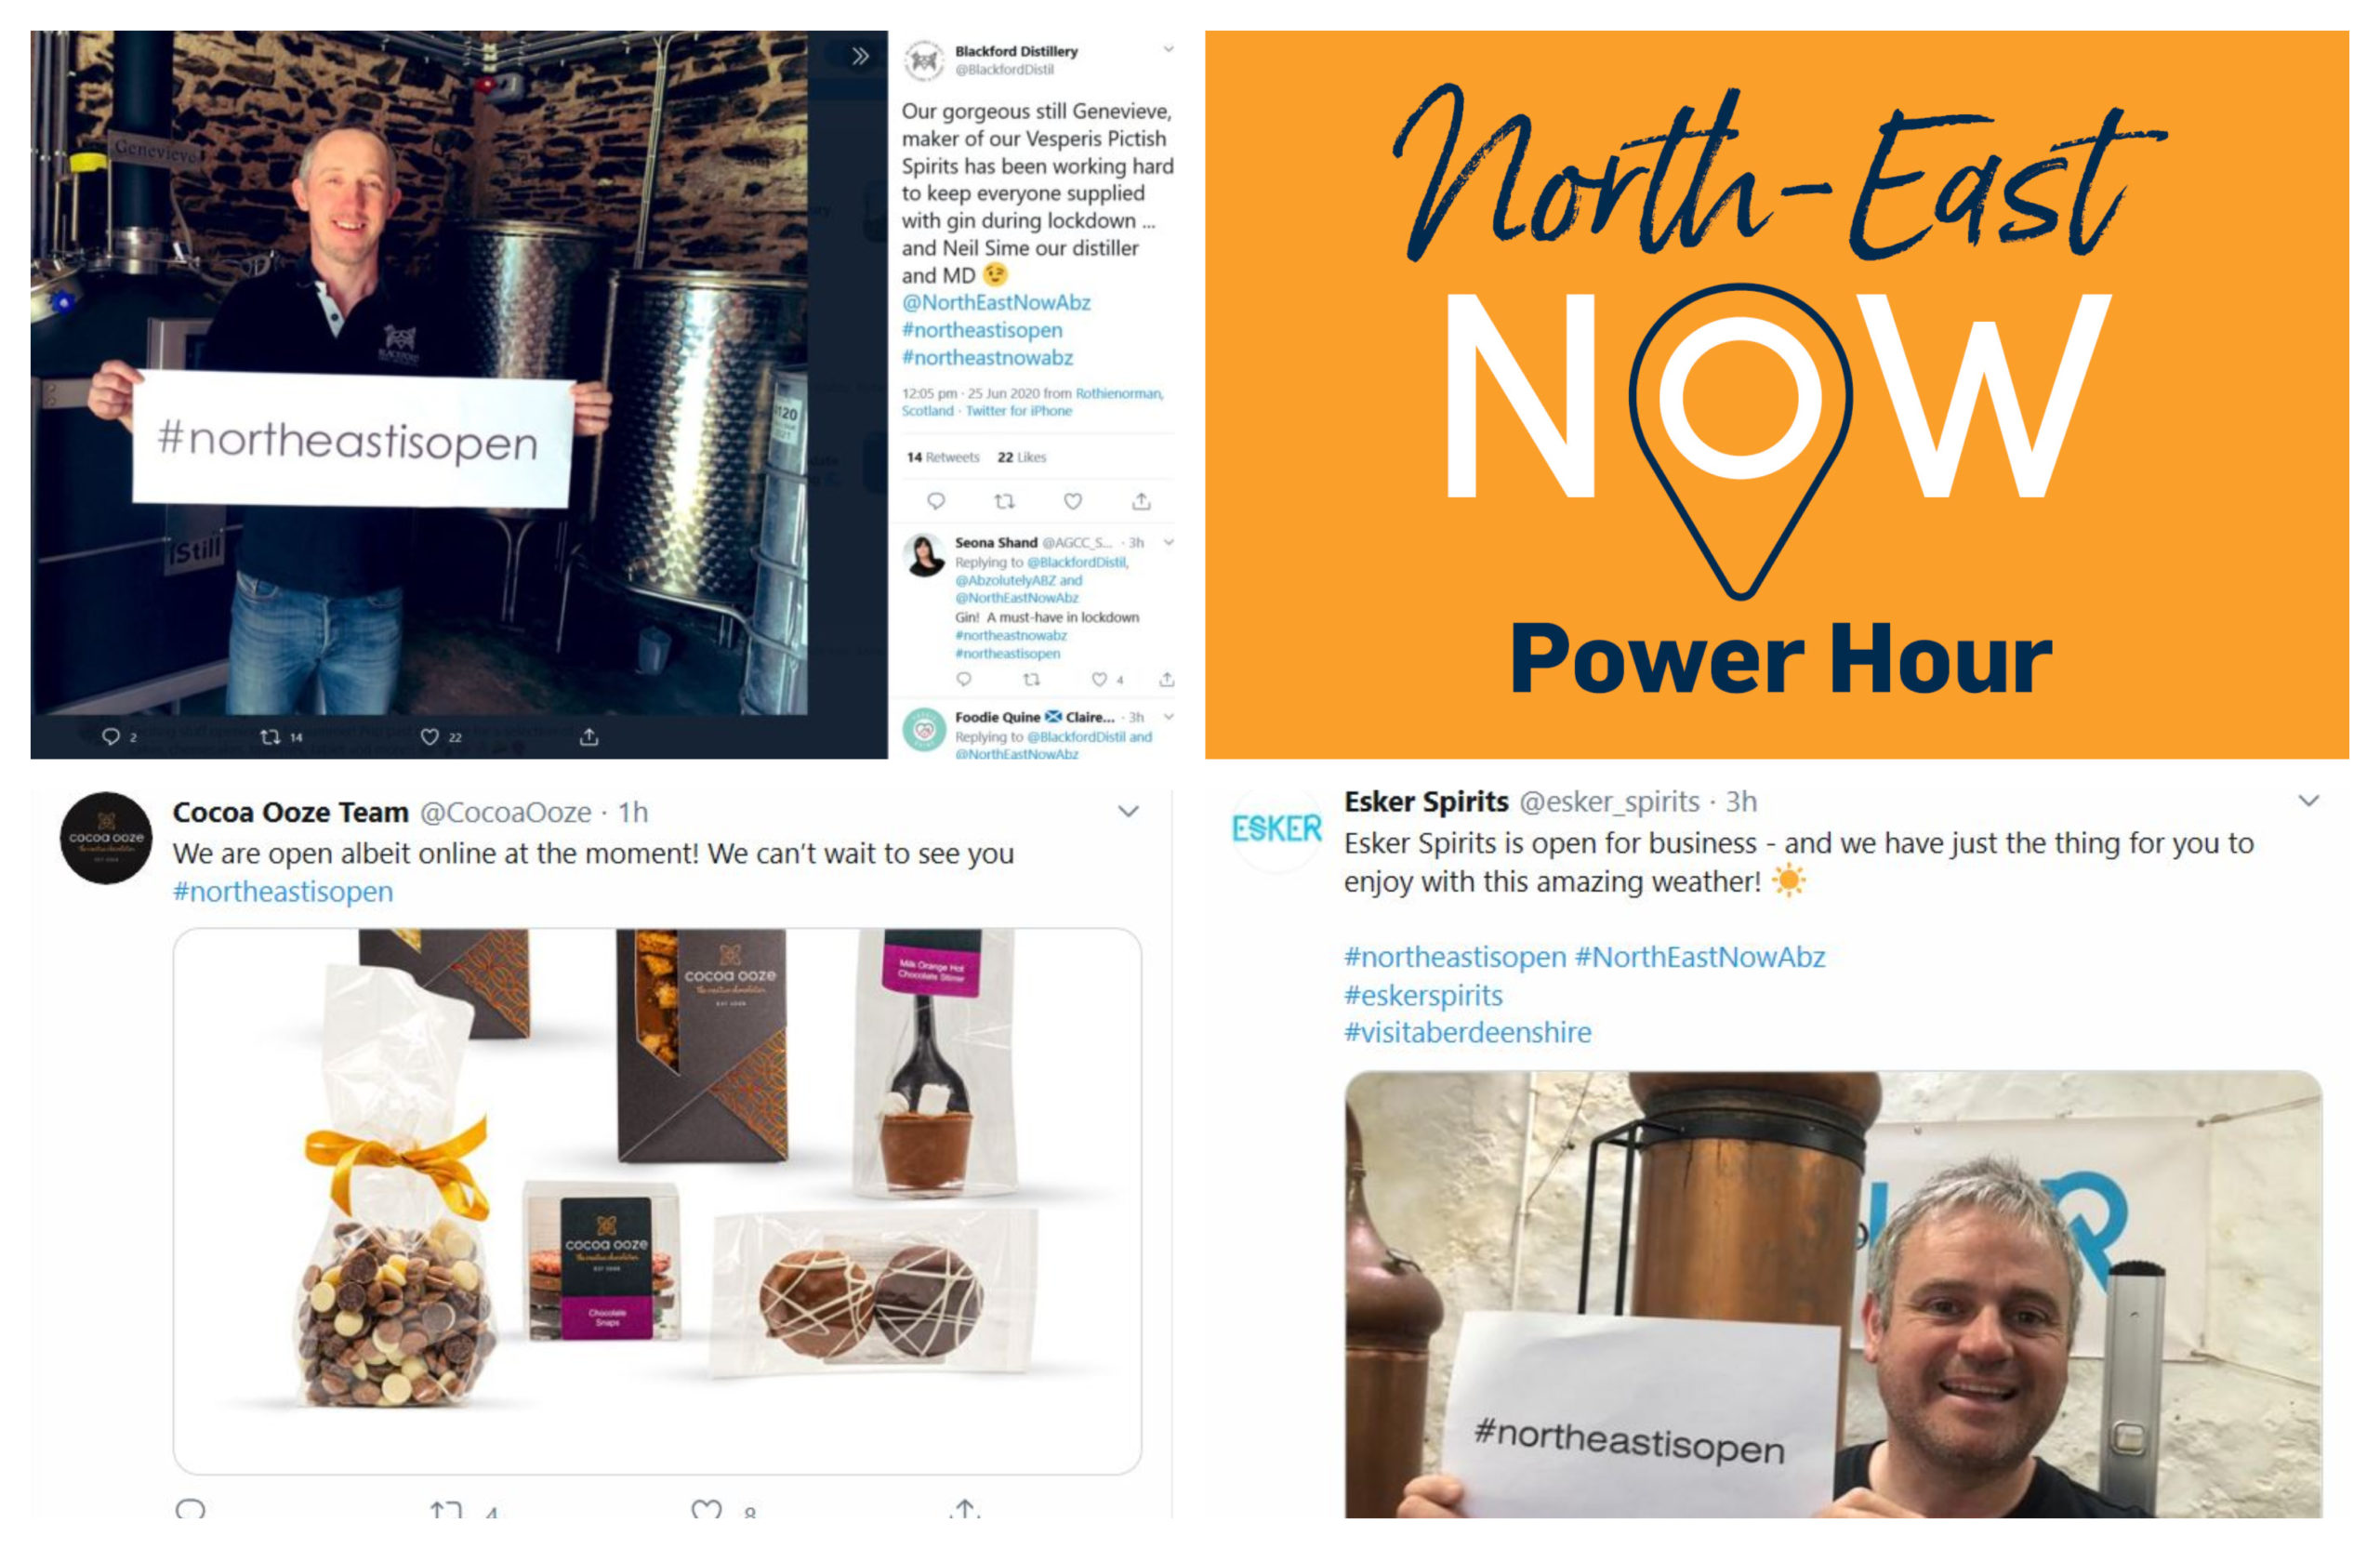 The power hour was arranged as part of the North-East Now campaign, which aims to shine a light on local businesses.